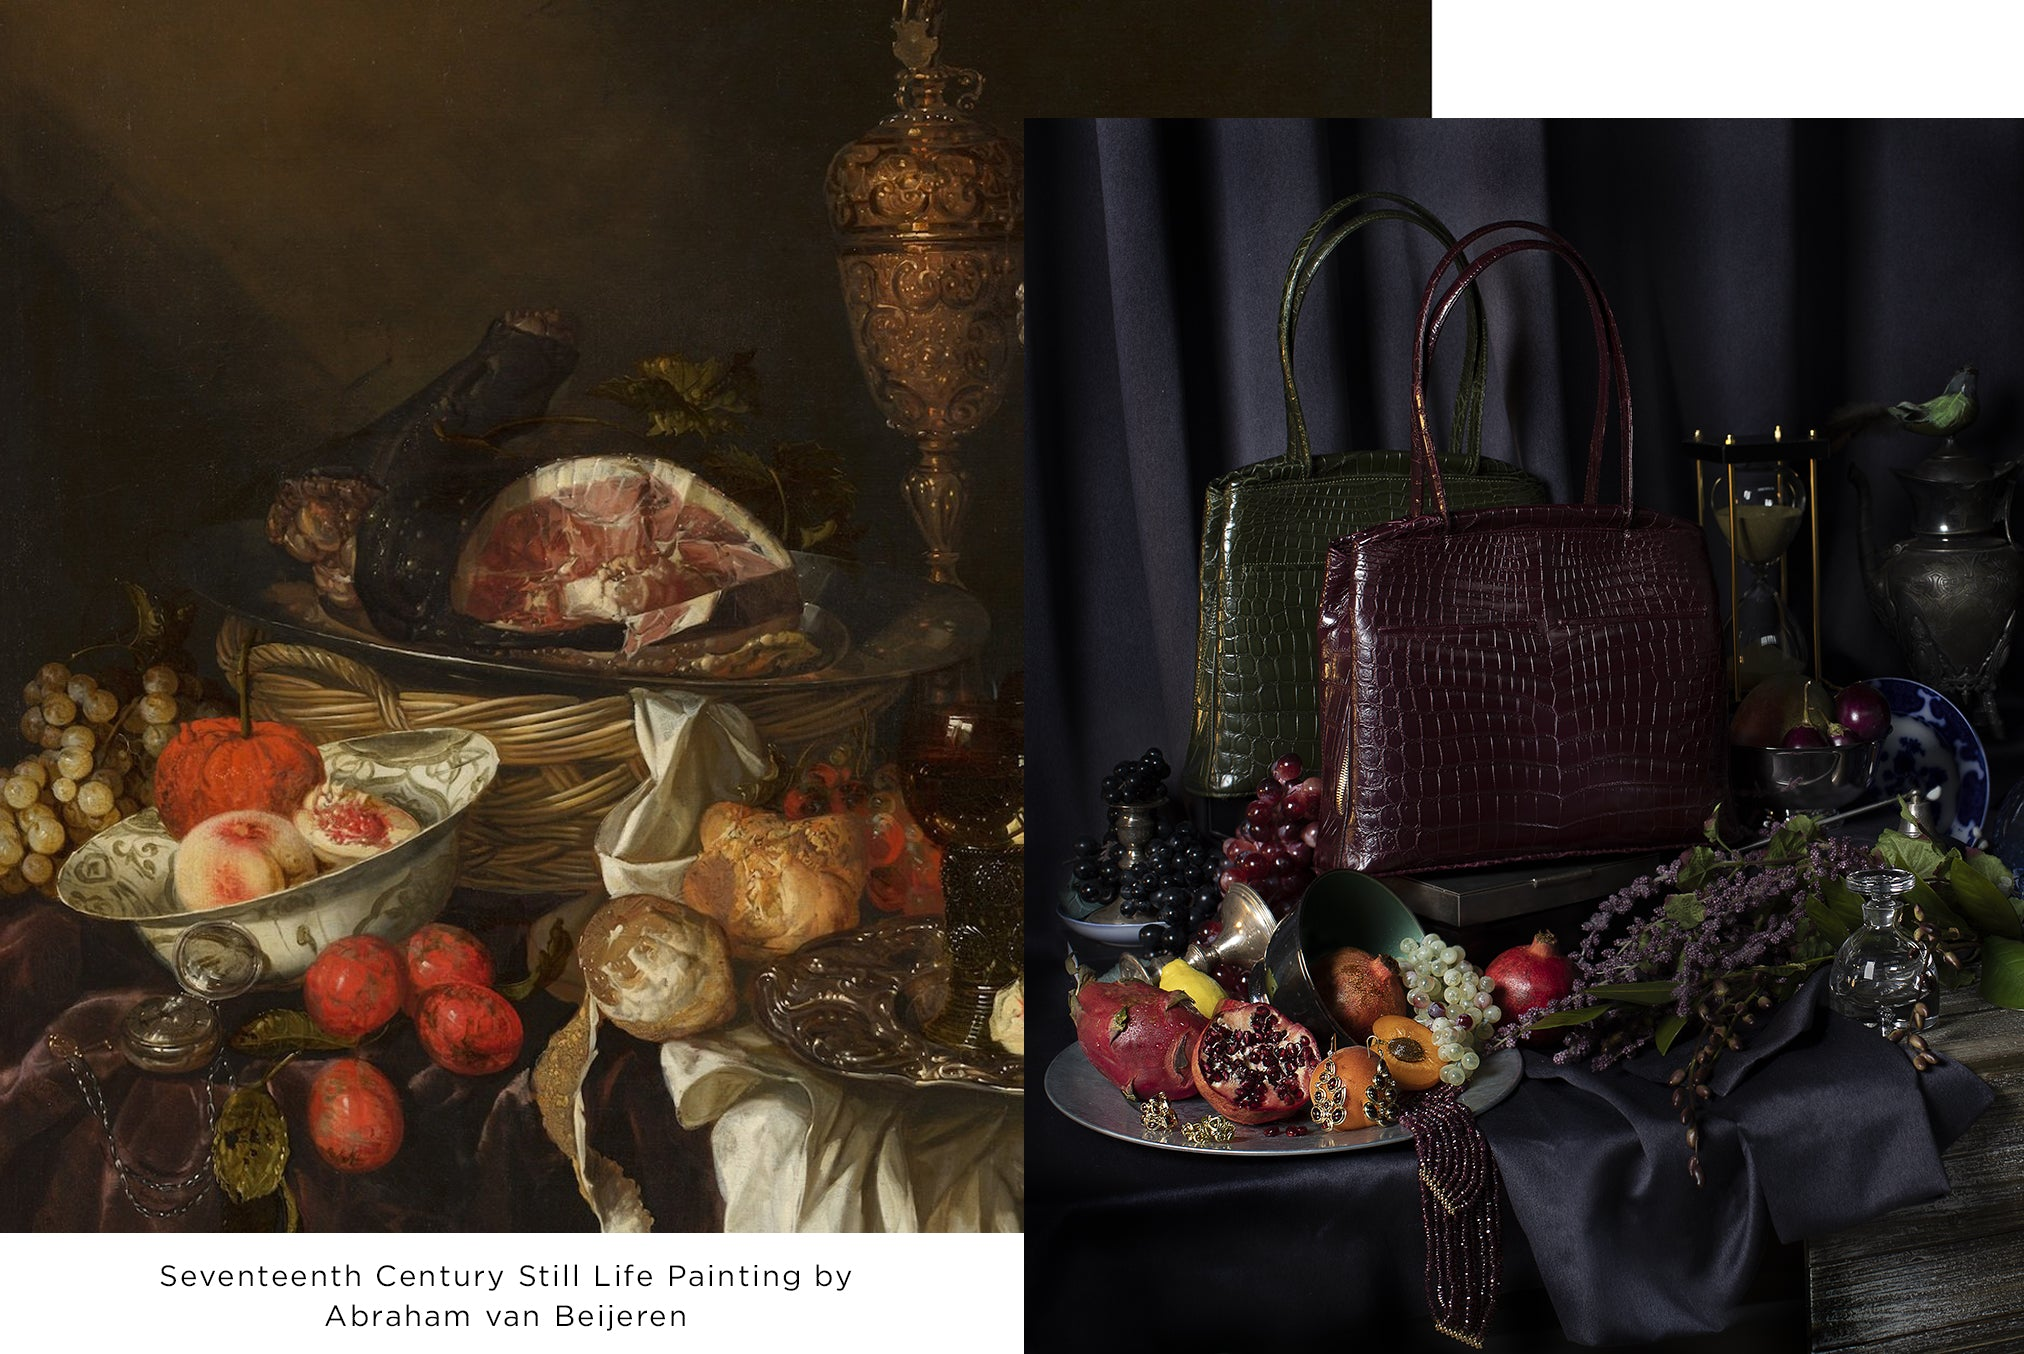 17th Century Still Life Painting by Abraham van Beijeren